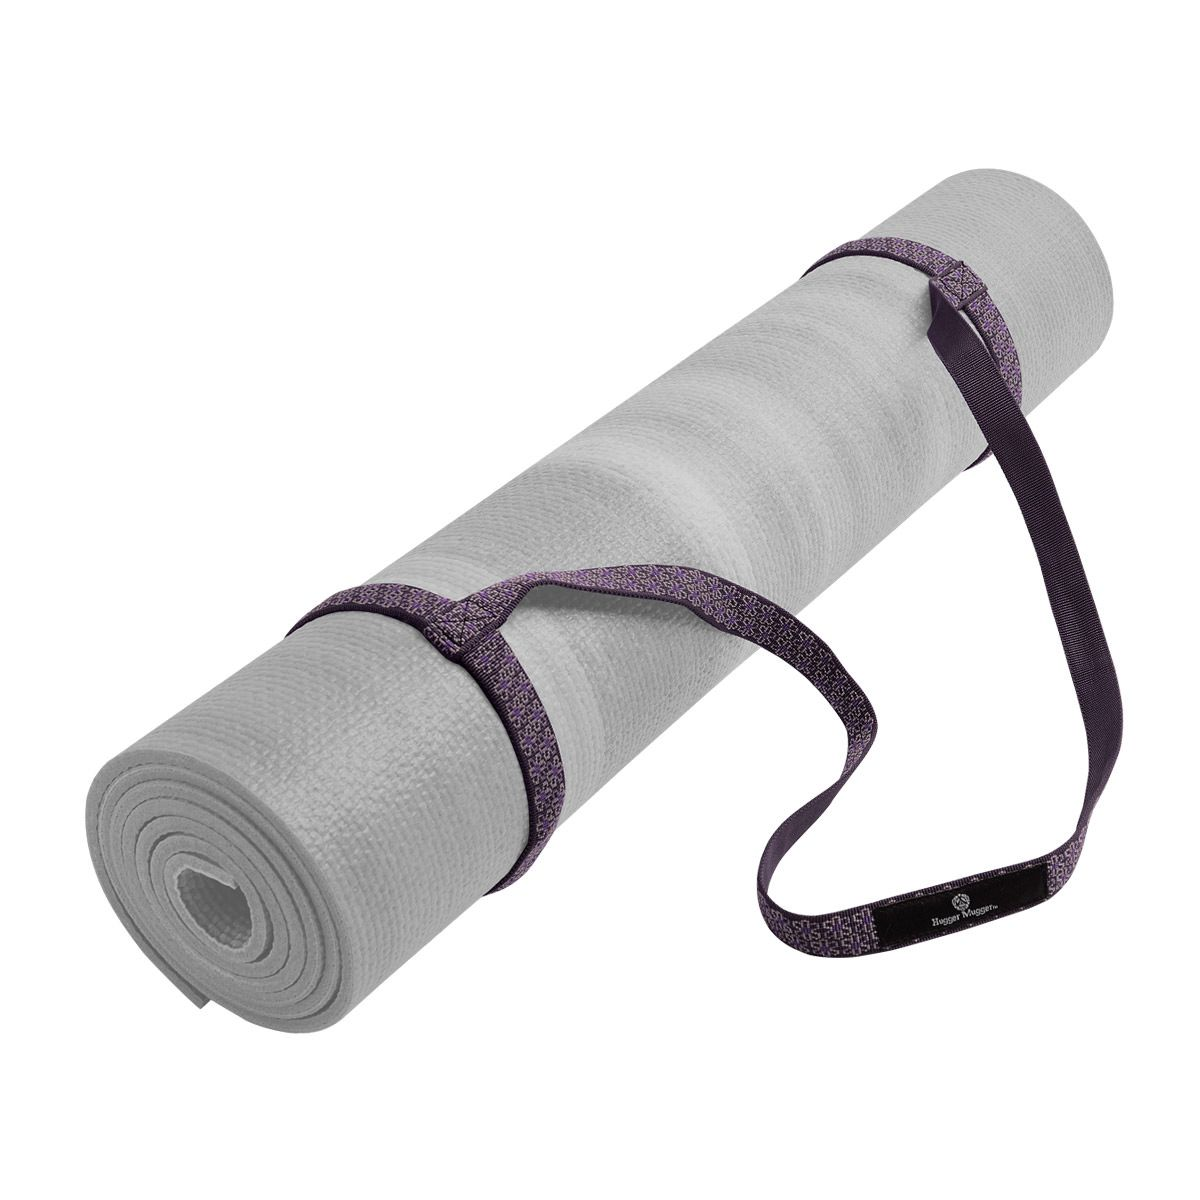 The 7 Best Yoga Mat Straps Slings And Handles Of 2020